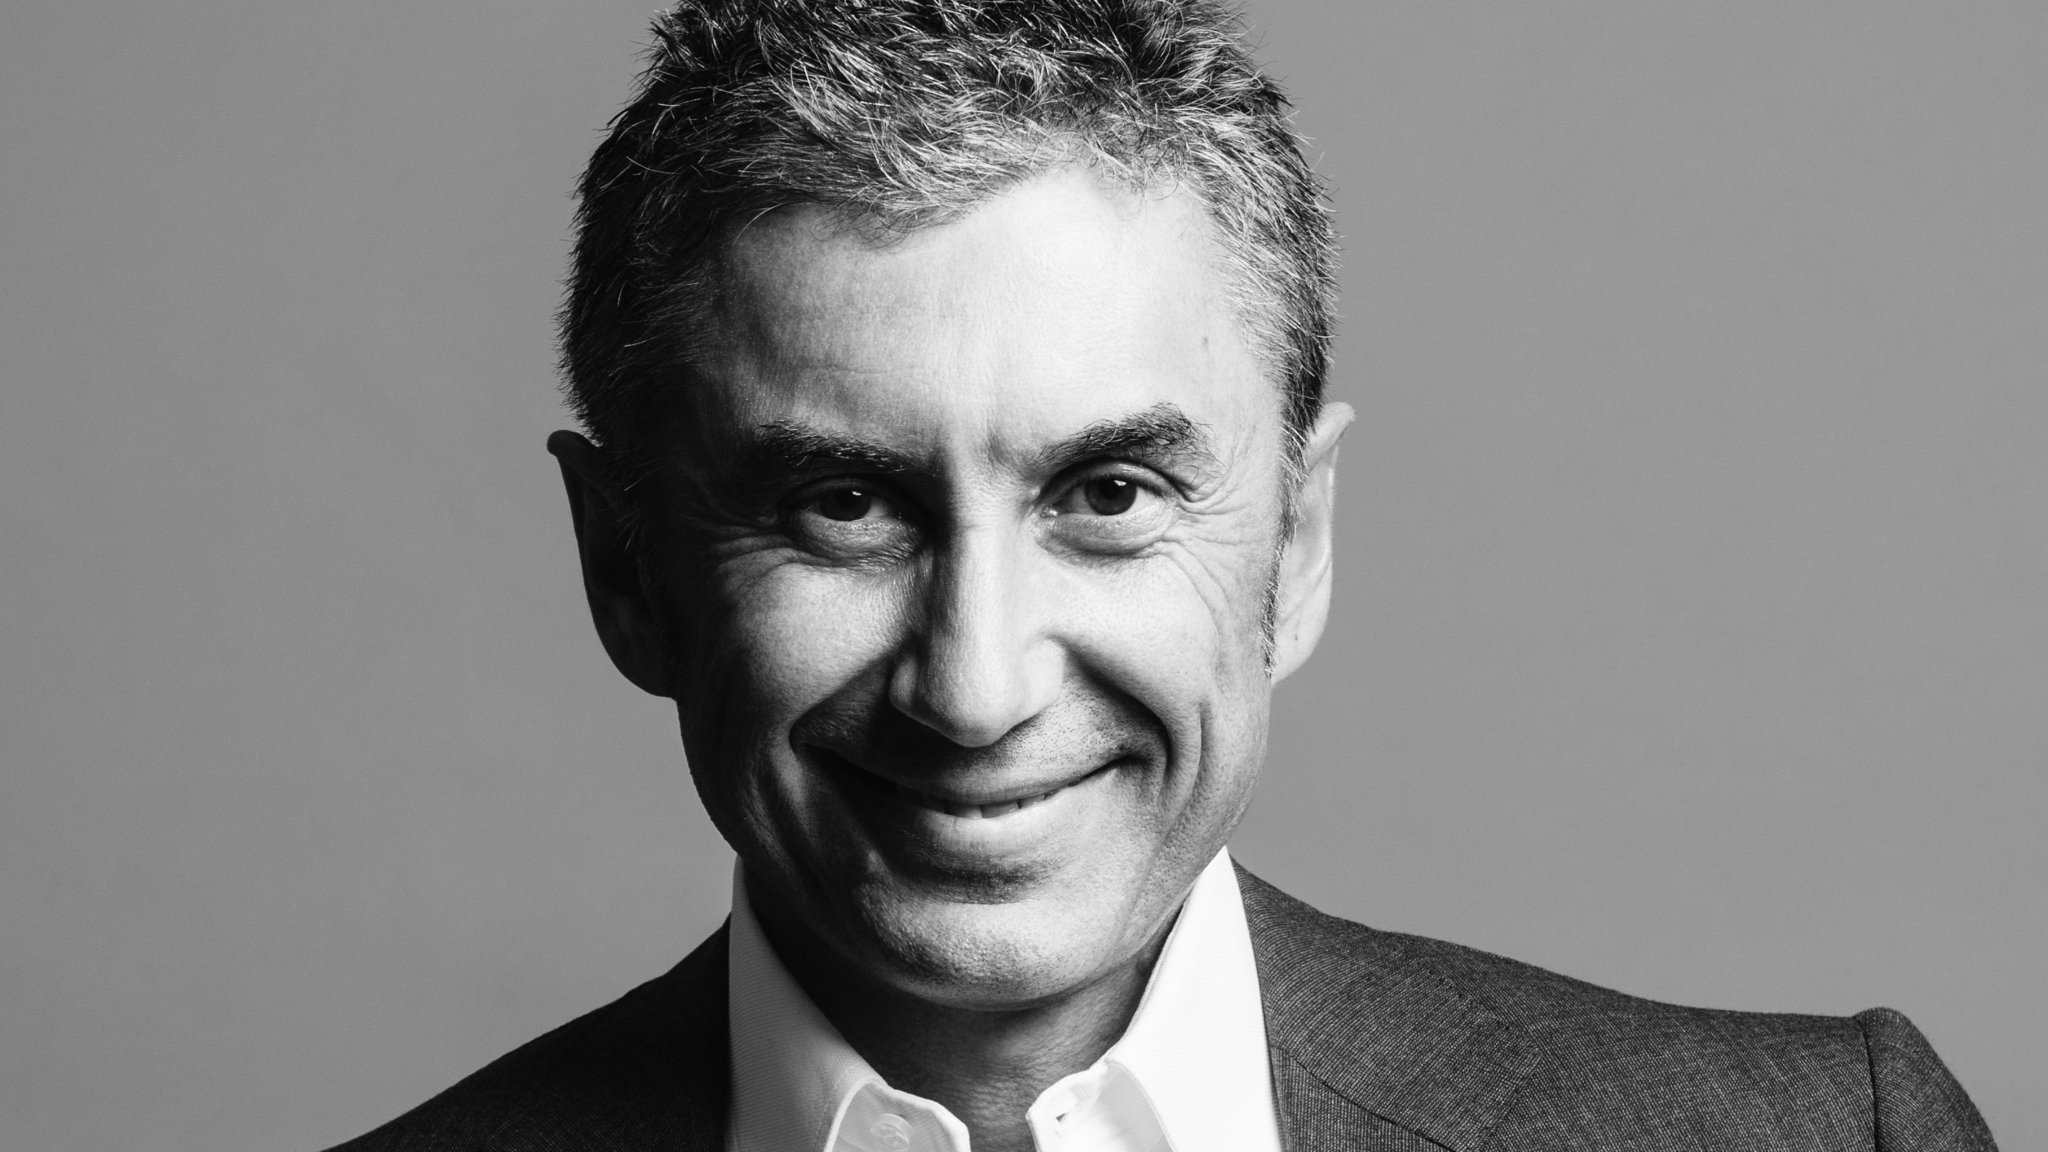 Fashion week Marco Gobbetti takes over as the new CEO of Burberry for woman